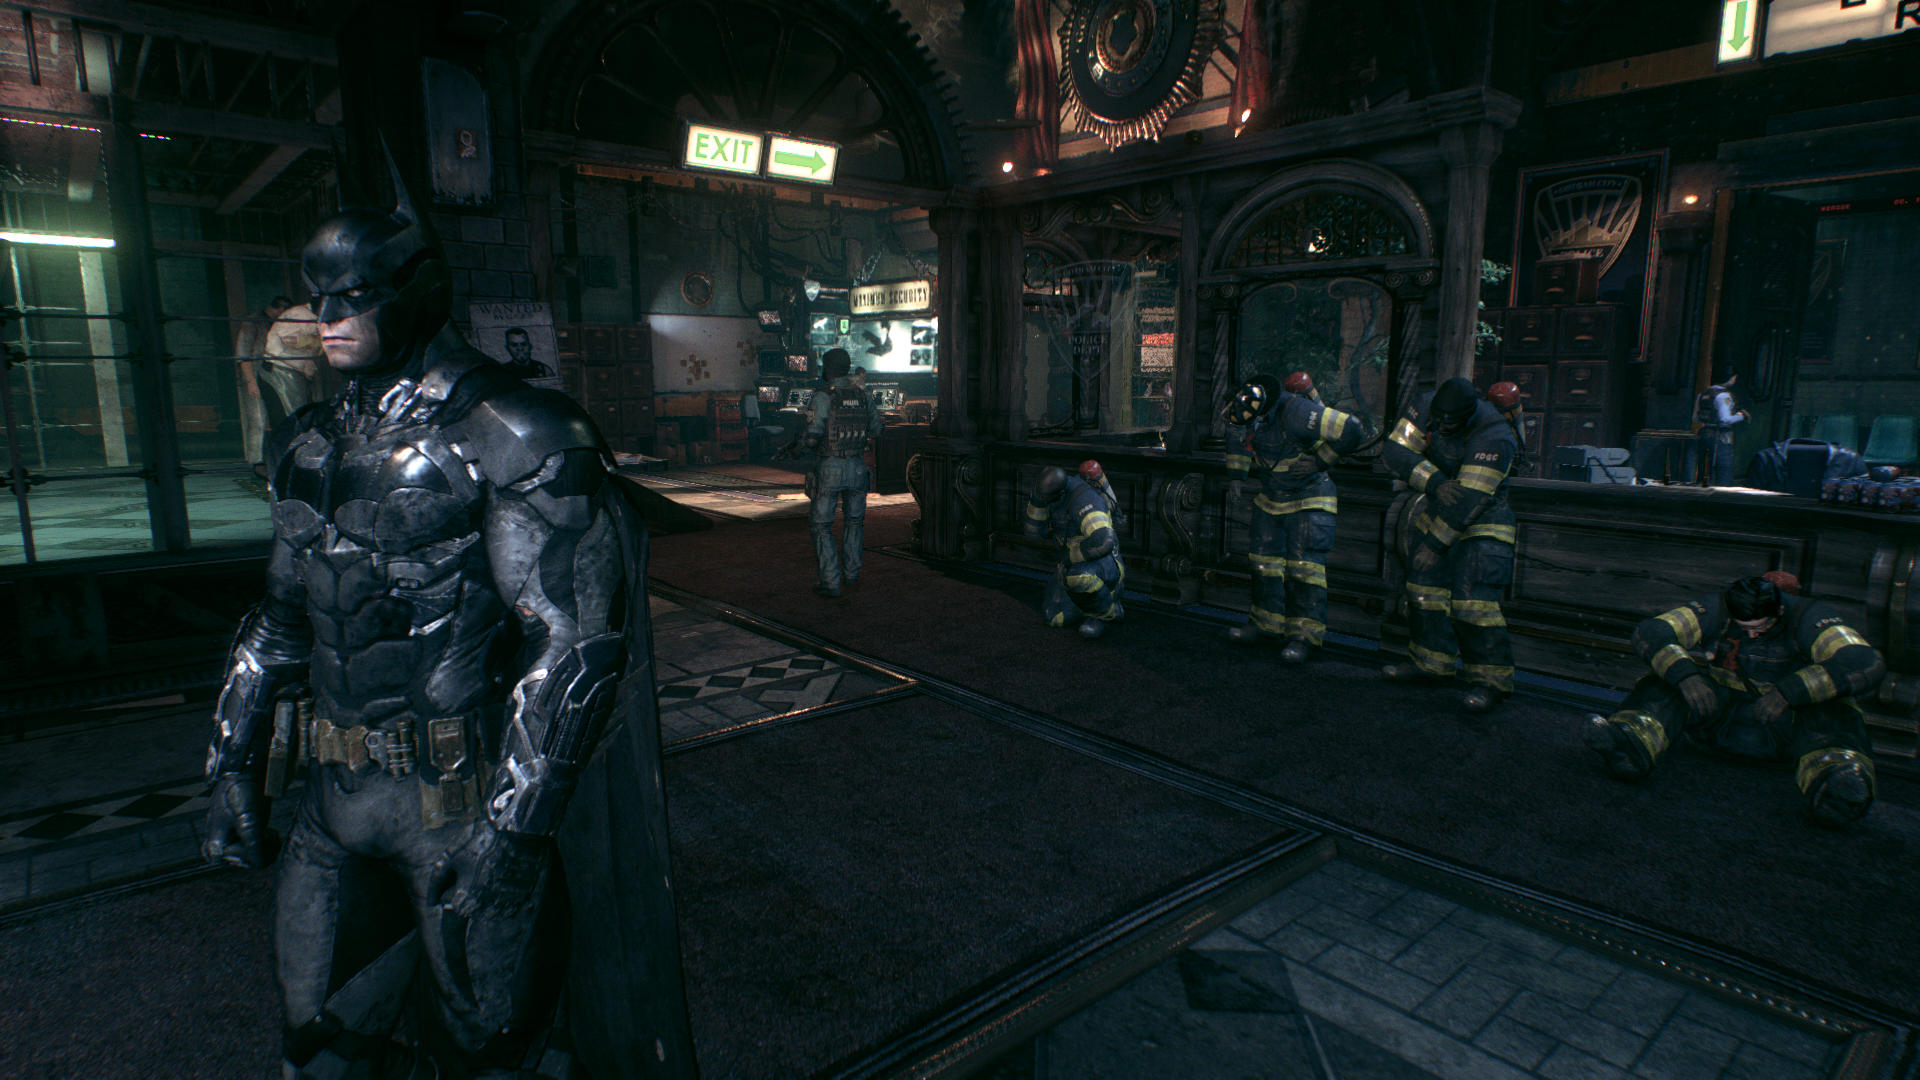 Batman inside the Gotham City police department